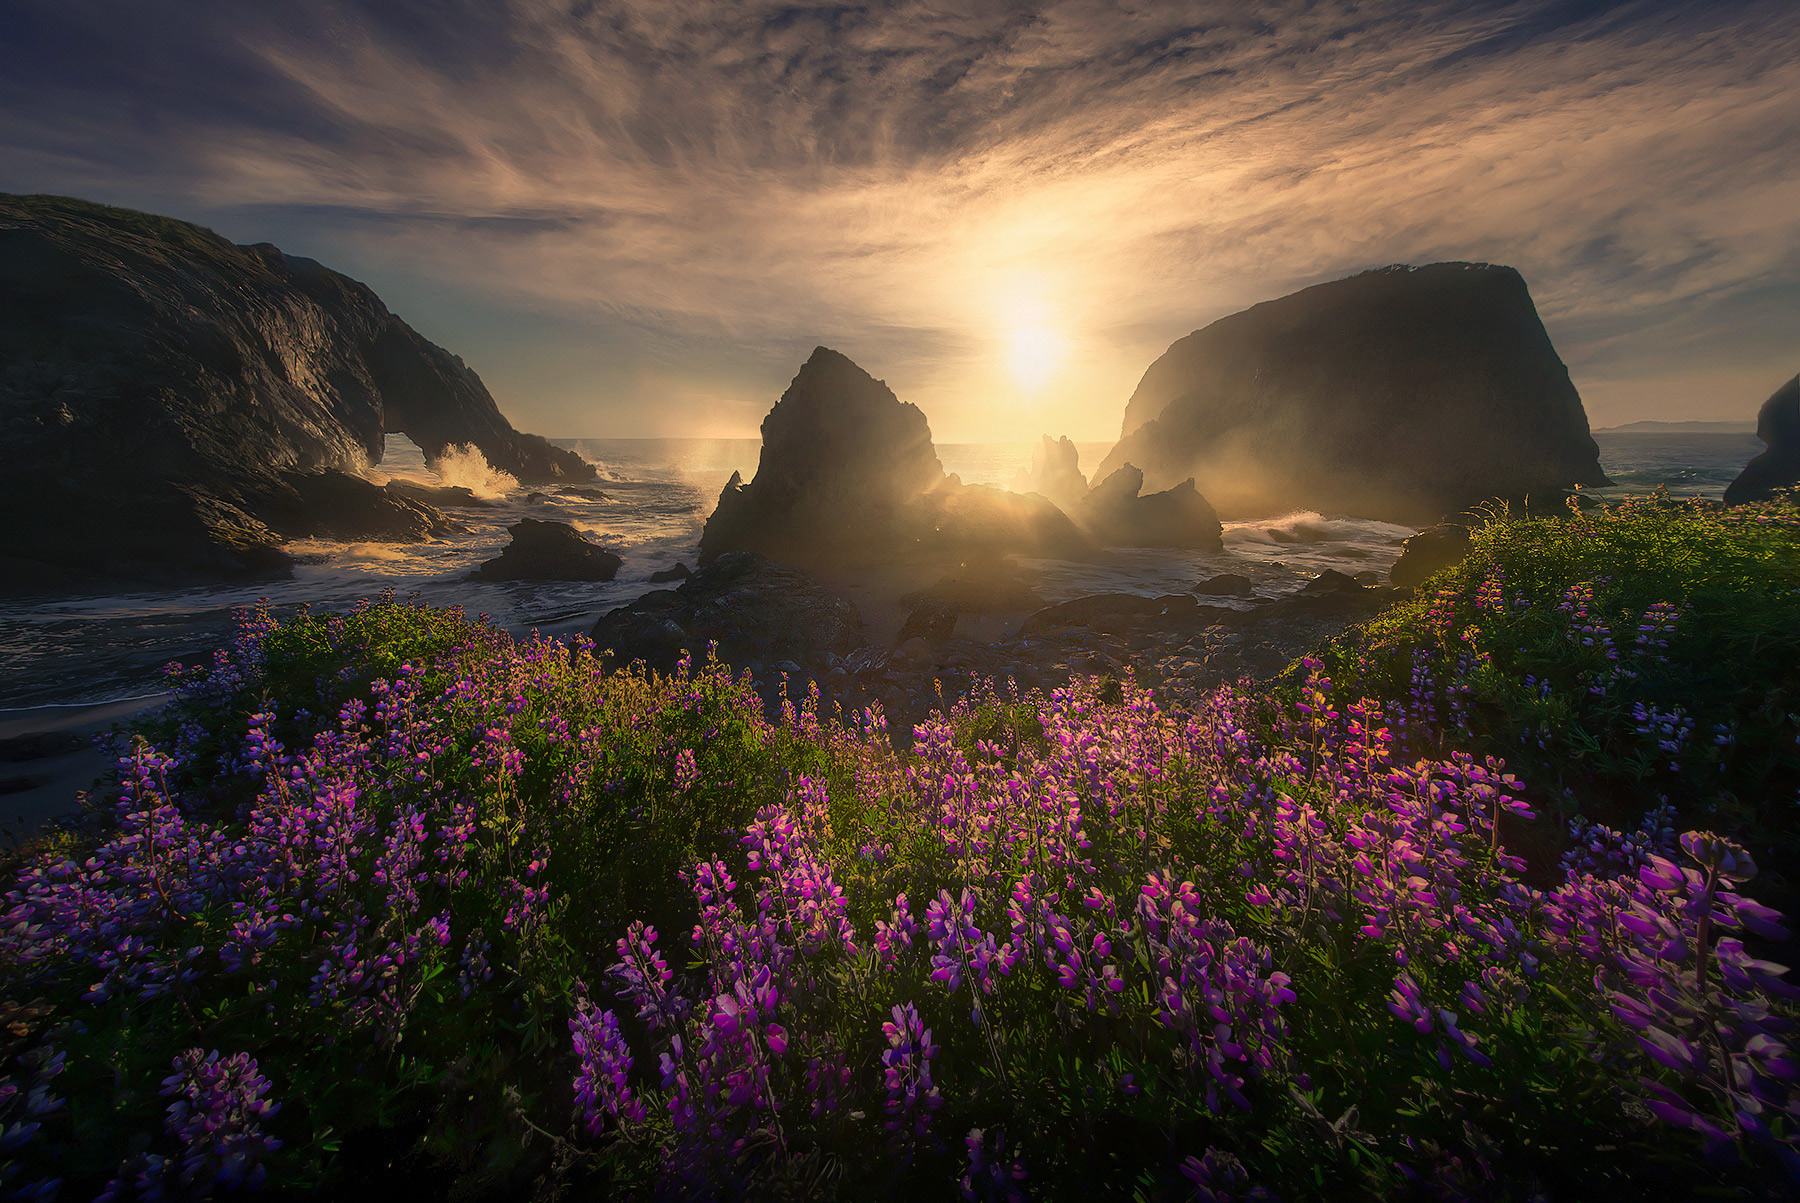 Oregon, wildflowers, beach, coast, waves, sunset, flowers, south coast, bandon, spring, photo